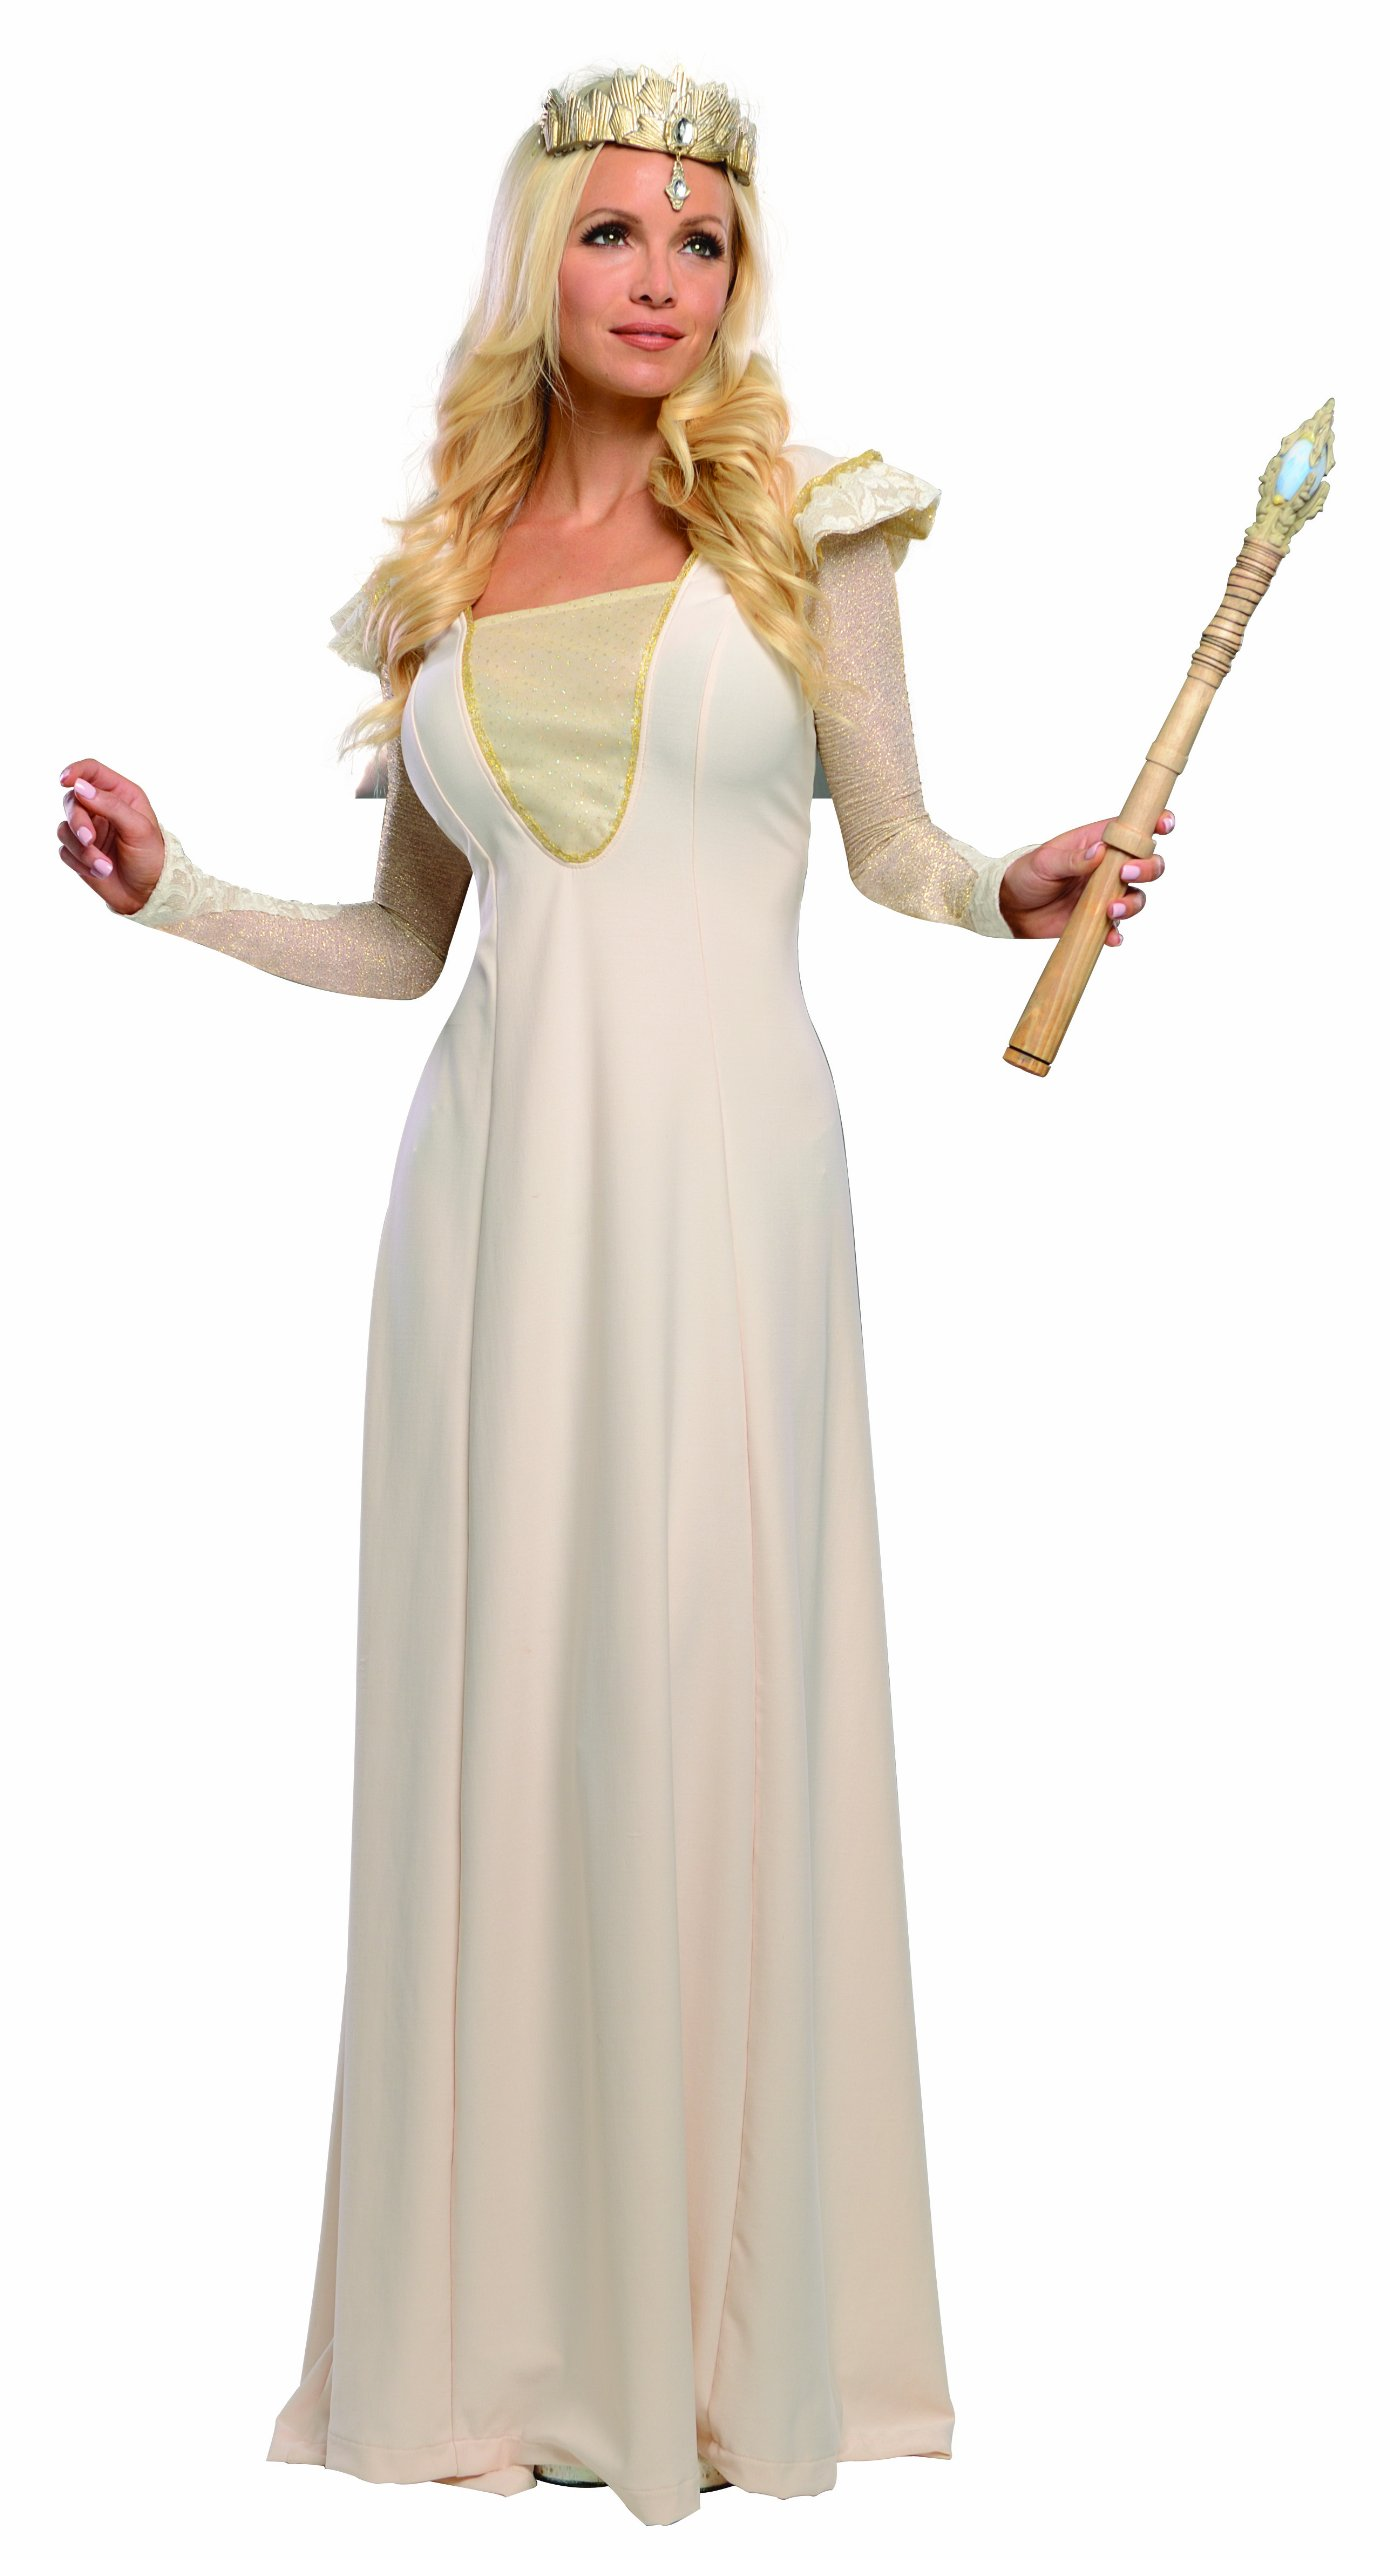 Rubie's Costume Disney's Oz The Great and Powerful Adult Dress and Headpiece